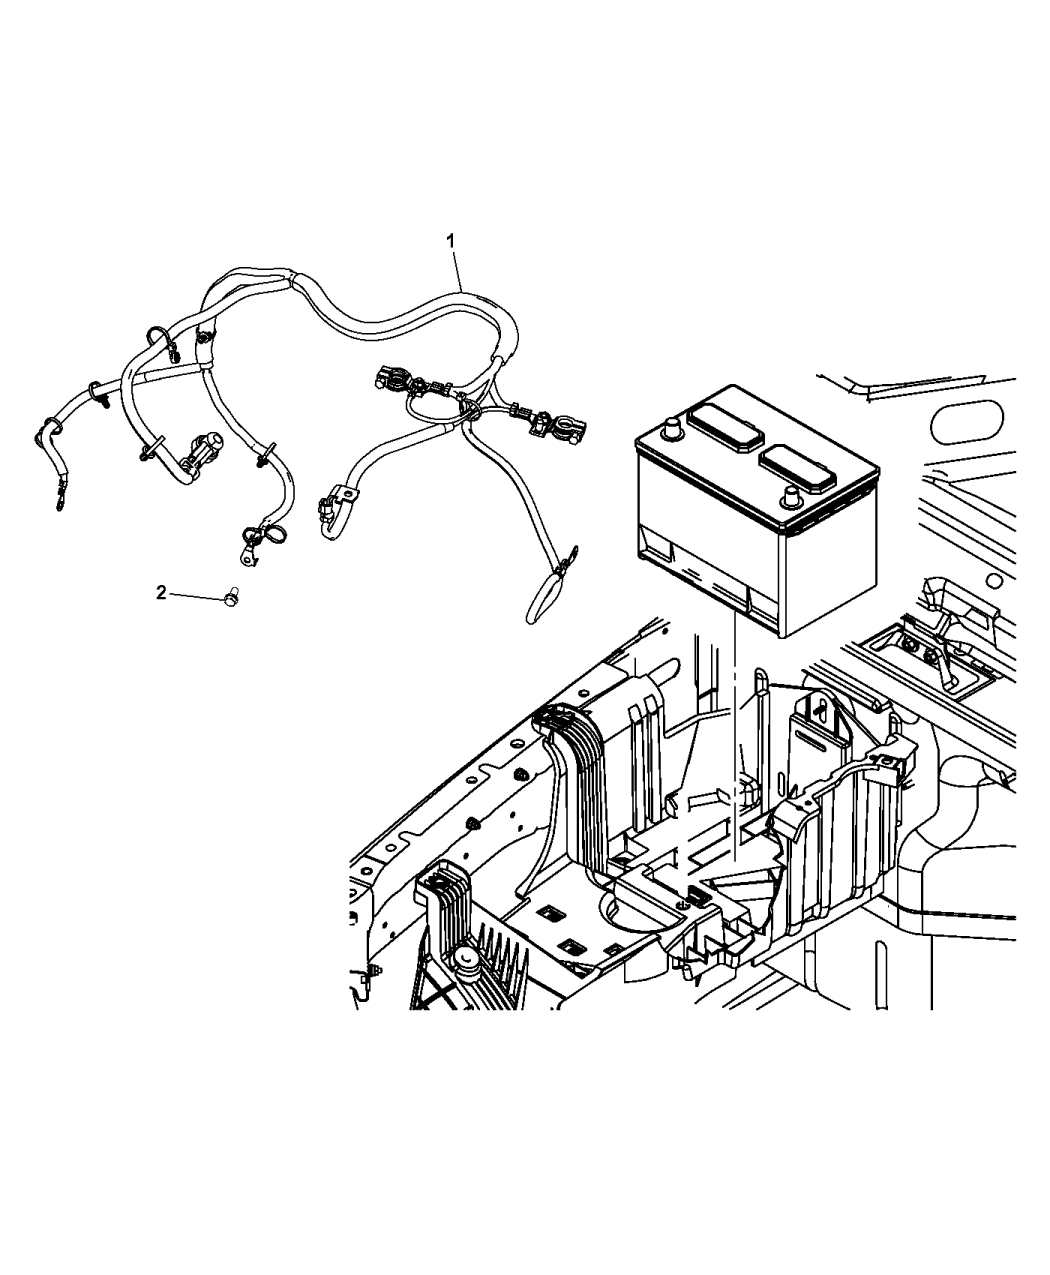 Jeep Wrangler Battery Wiring